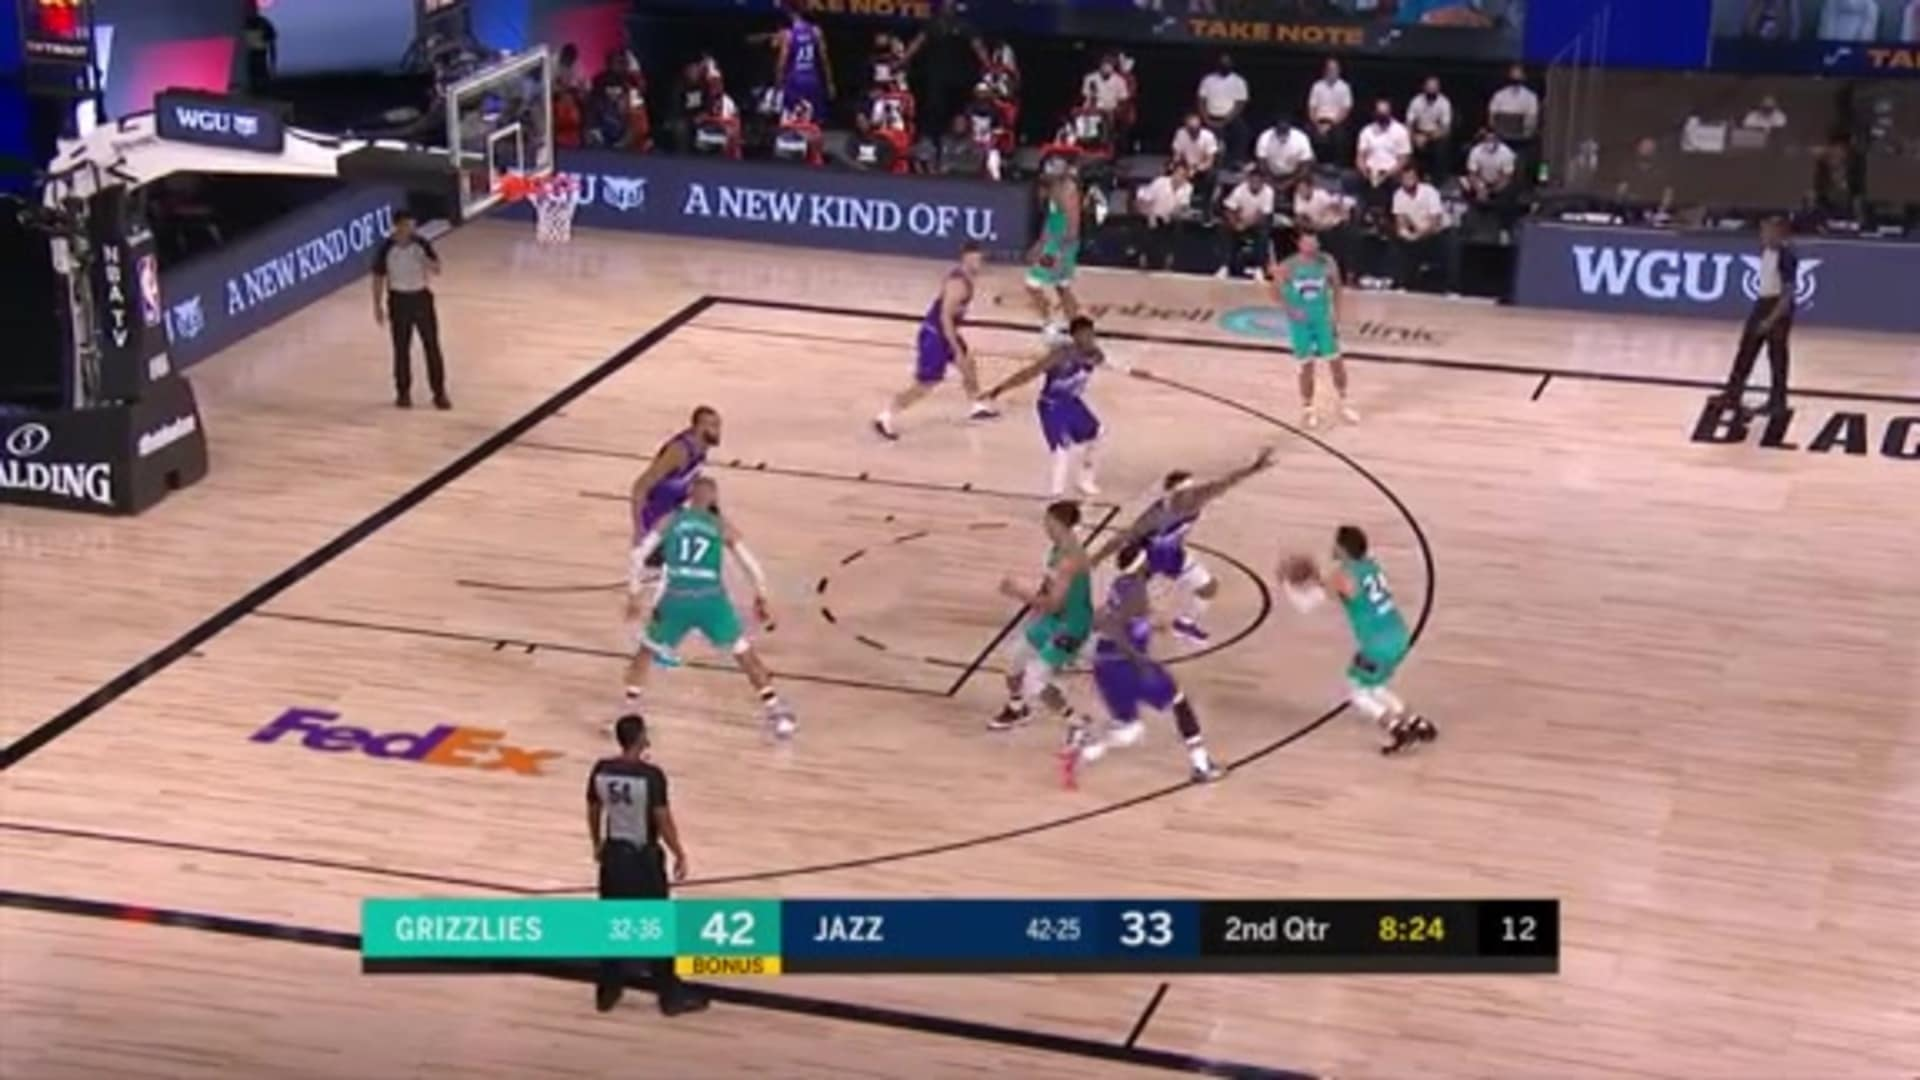 Dillon Brooks fires away from way downtown